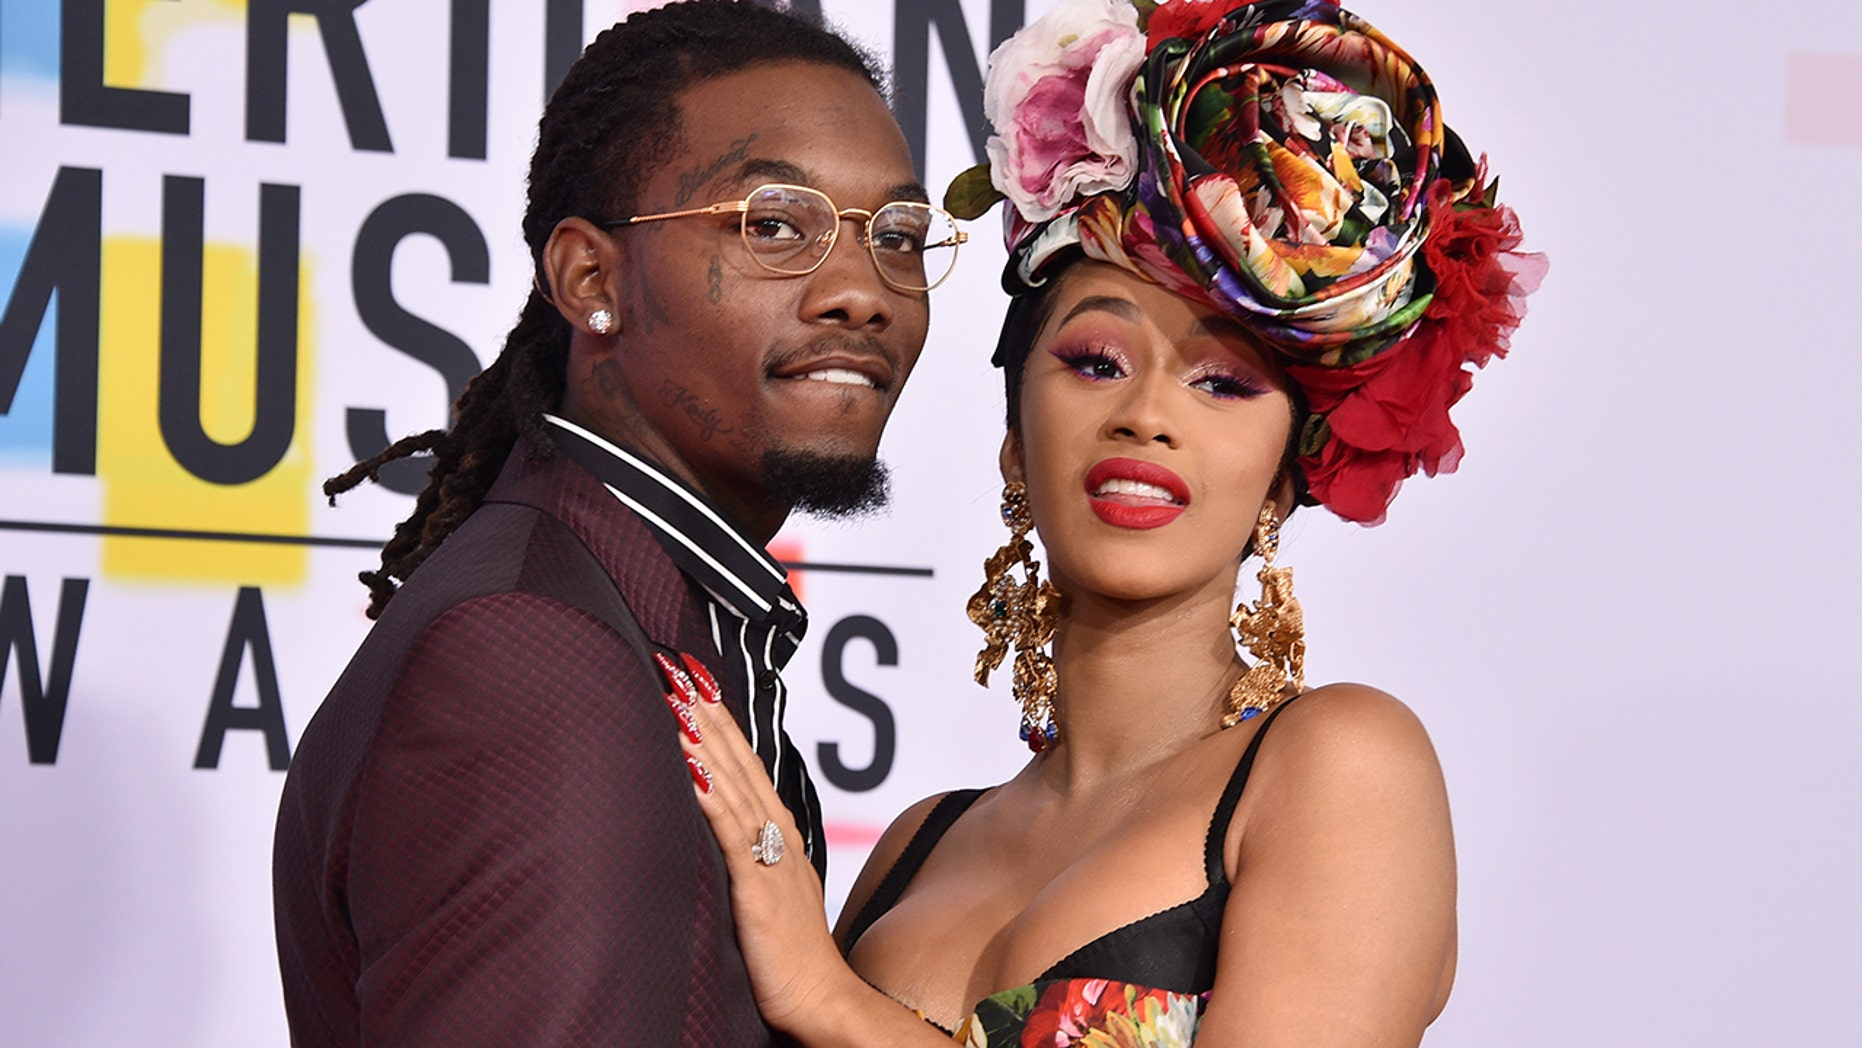 Cardi B shared the first photo of her daughter Kulture on Wednesday, hours after revealing she and husband Offset have split.